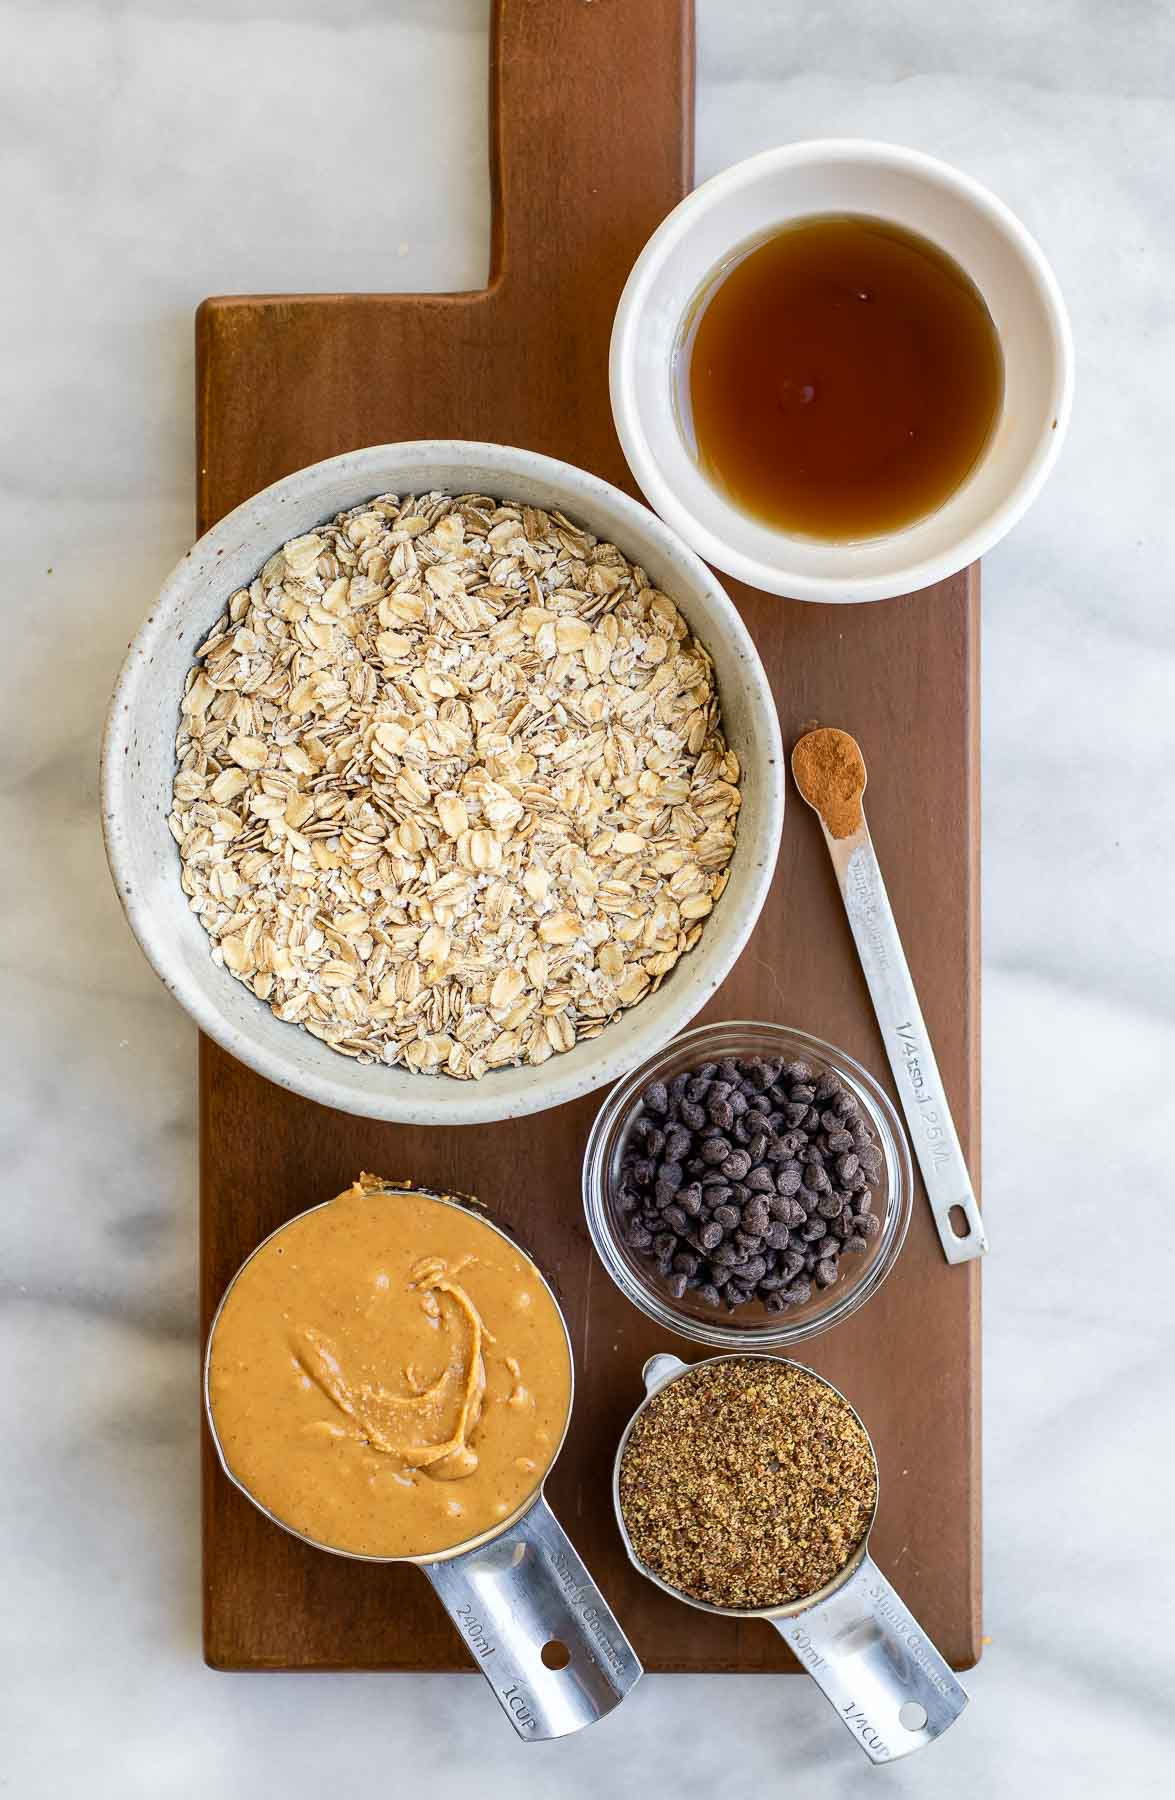 Ingredients for the recipe arranged in small bowls.